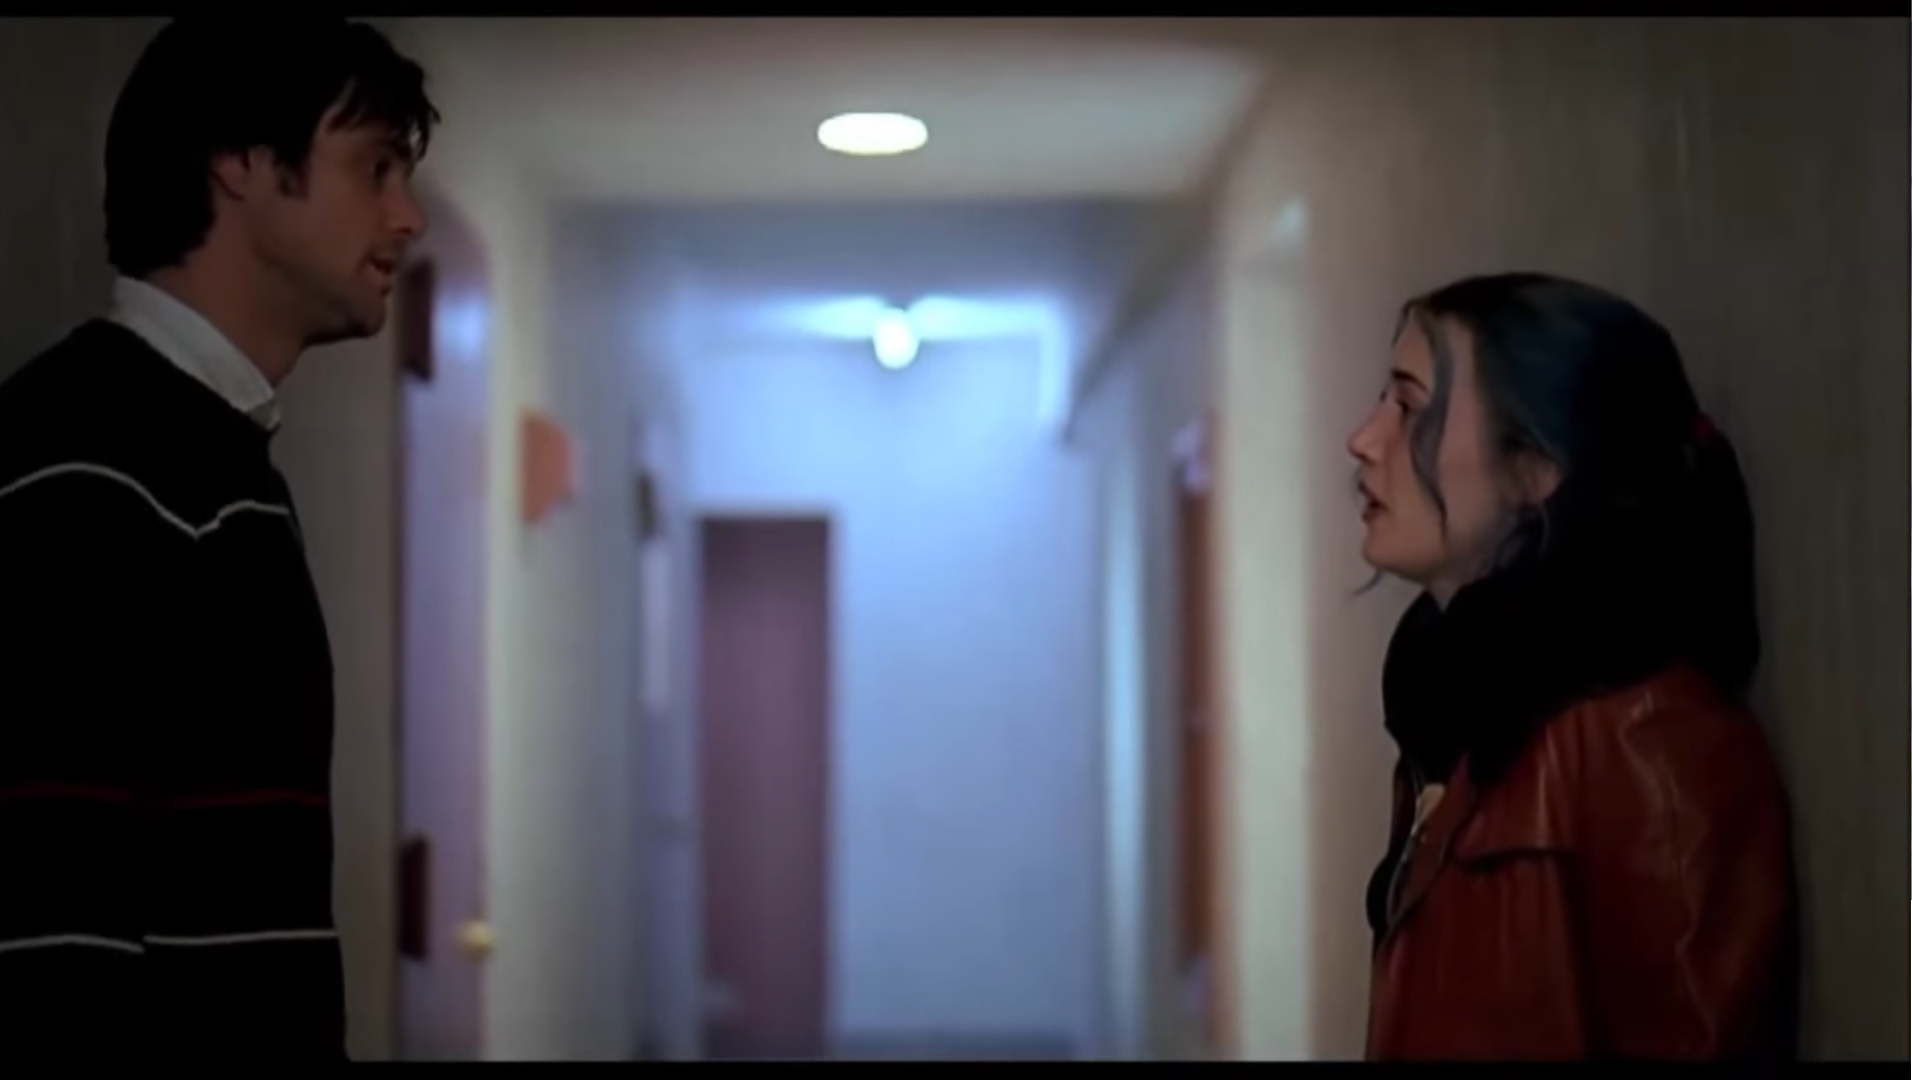 The Great Movie Scenes Eternal Sunshine Of The Spotless Mind